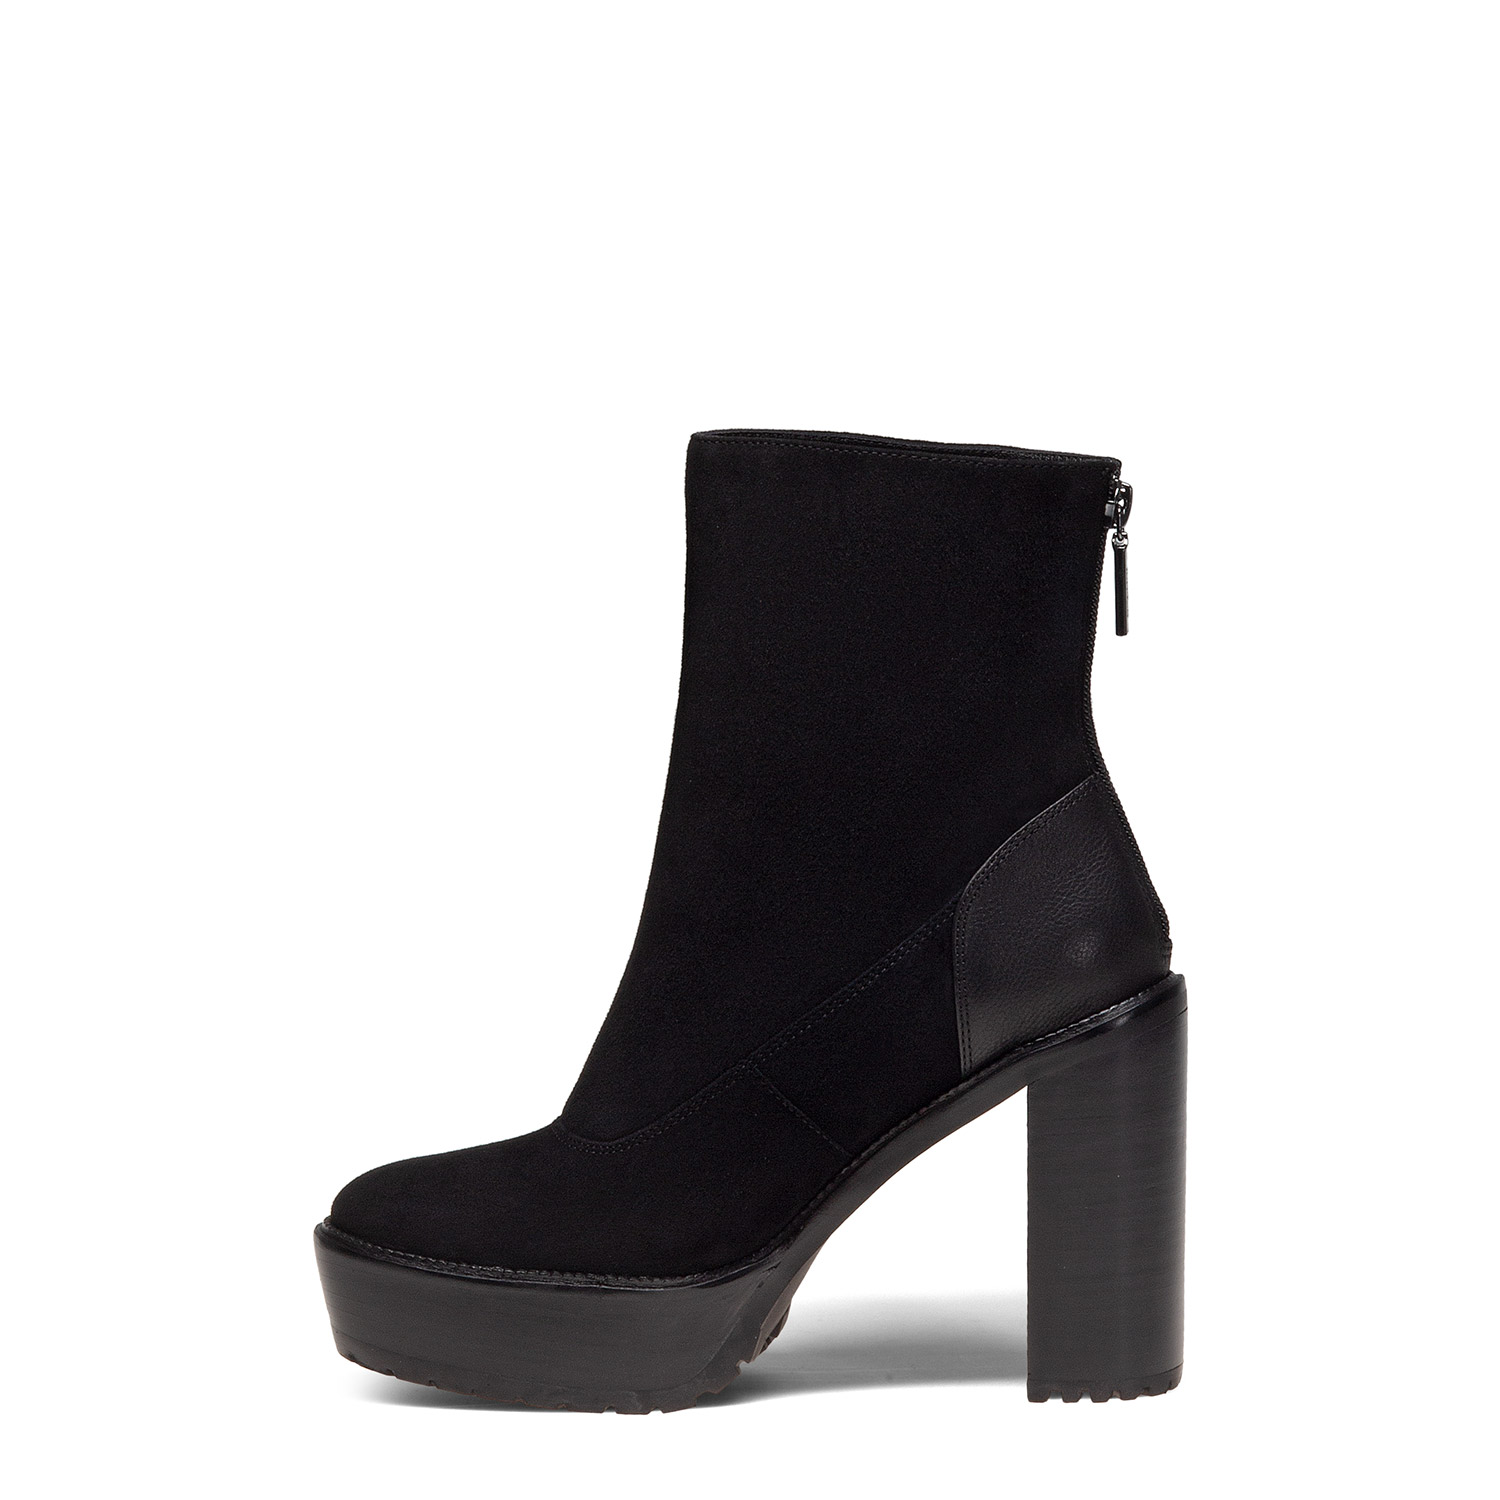 Women's ankle boots PAZOLINI FG-MAP4-1